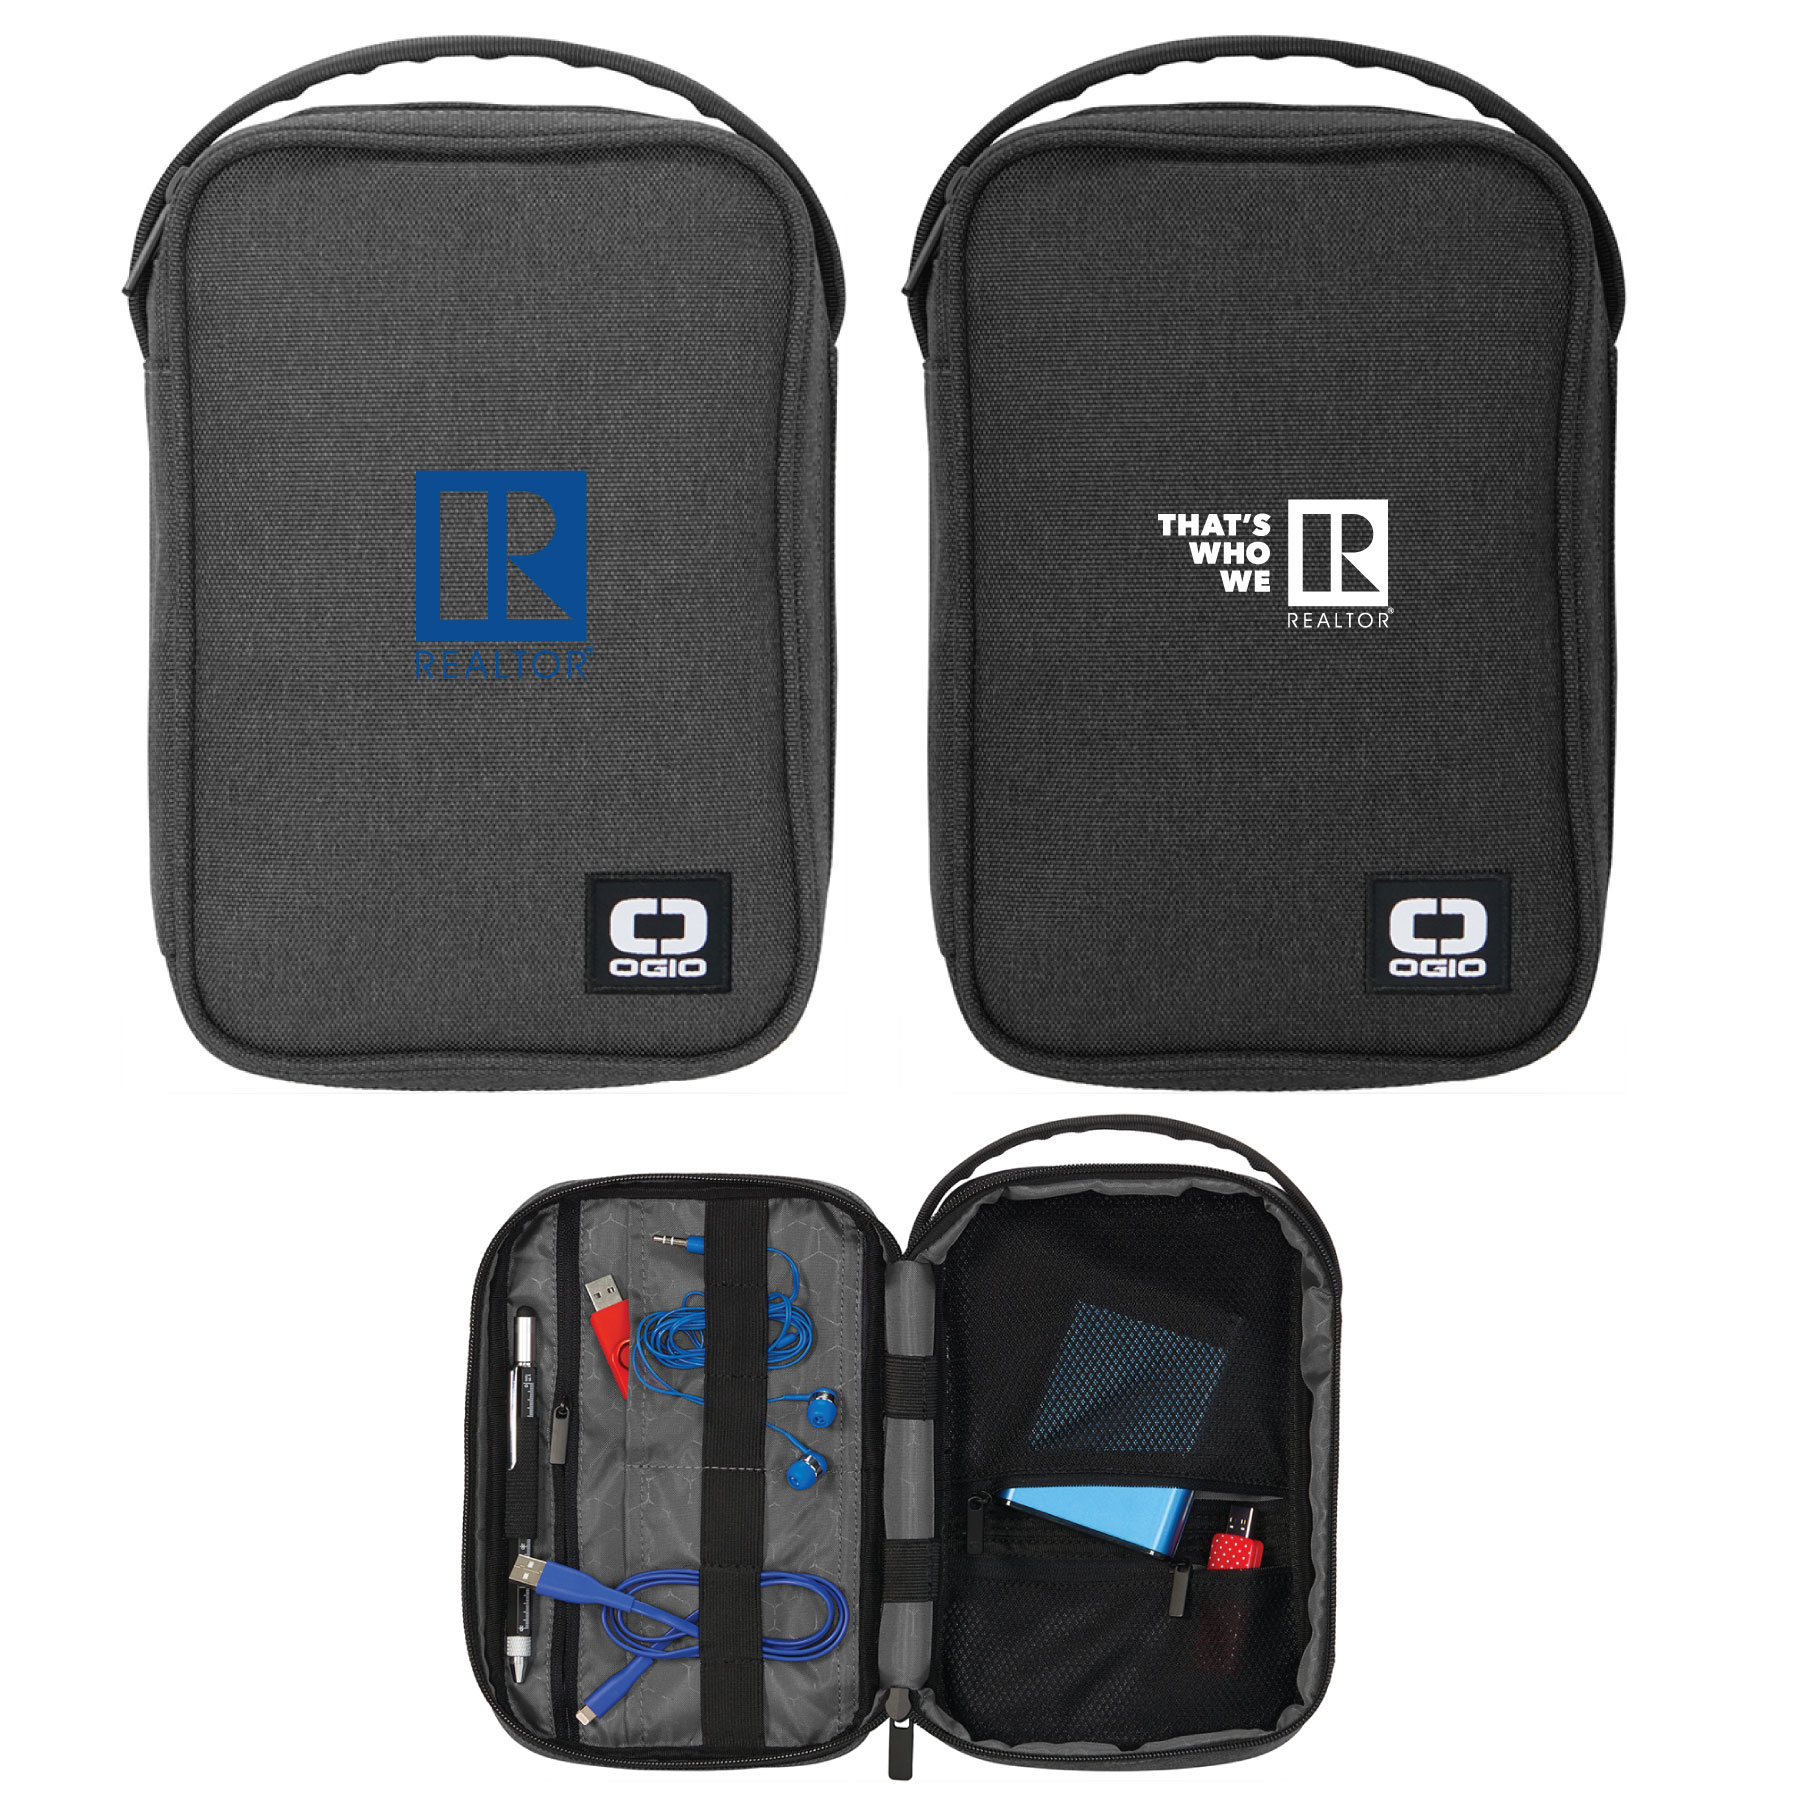 Vault OGIO® Electronics Tote/Valuables Case Dob,Bathroom,Kits,Pouches,Tech,Cases